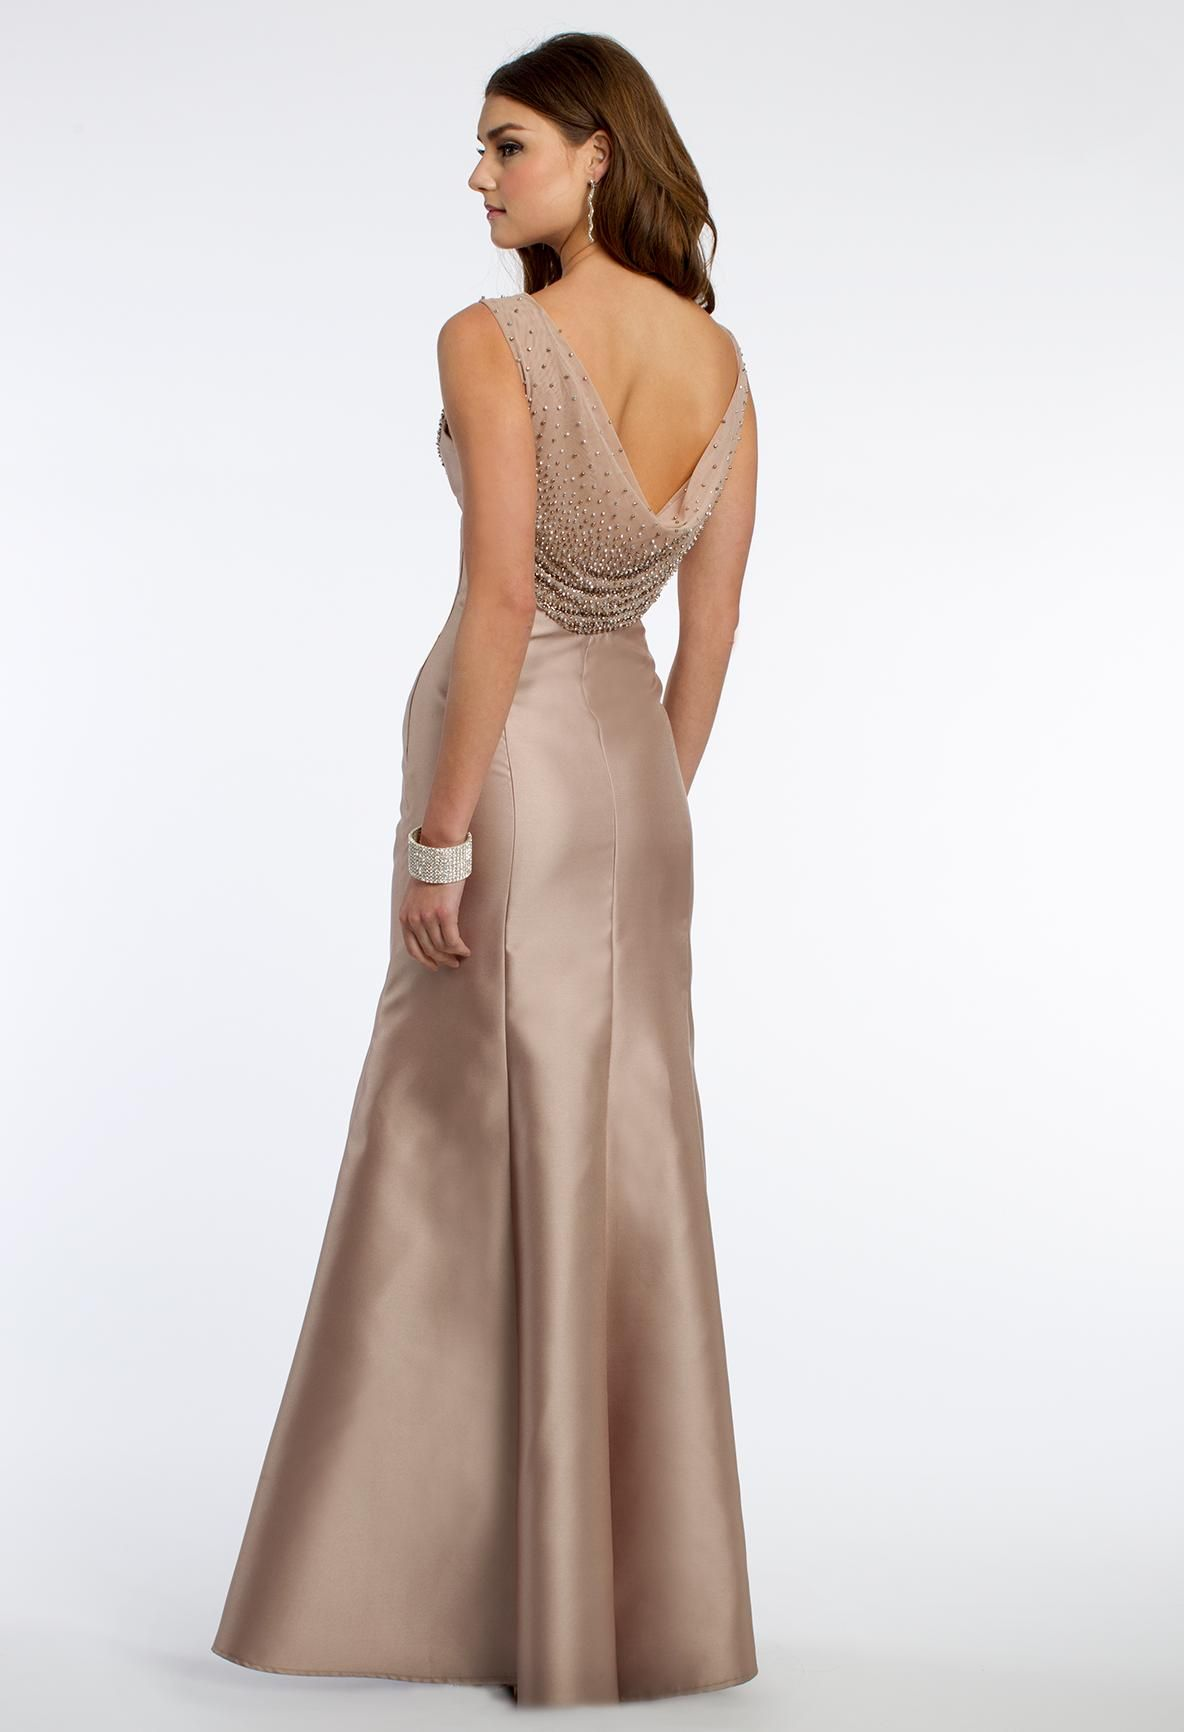 Cowl Neck Prom Dress Camillelavie Clvprom Prom Style Long